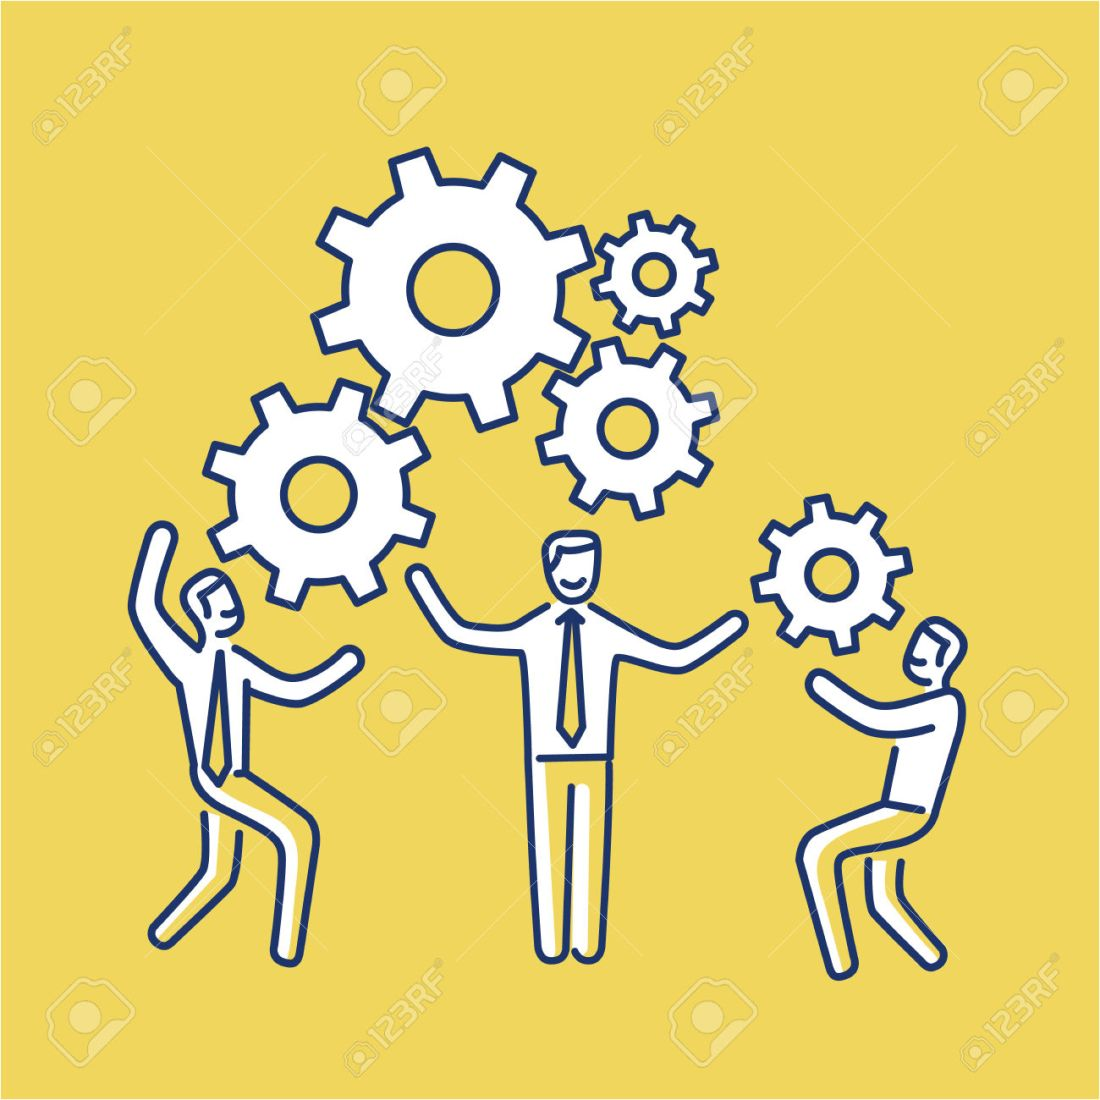 Vector teamwork skills icon of businessmans with gears bulding e